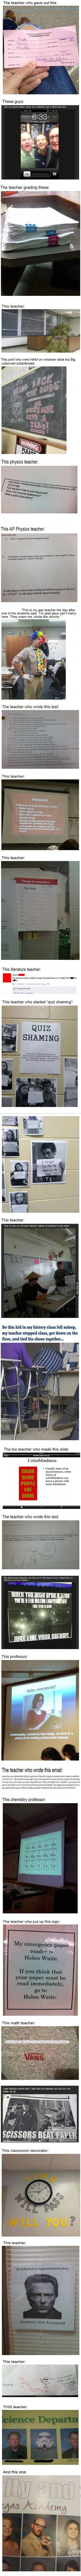 Epic Teachers troll student. The Justin Beiber one got me XD